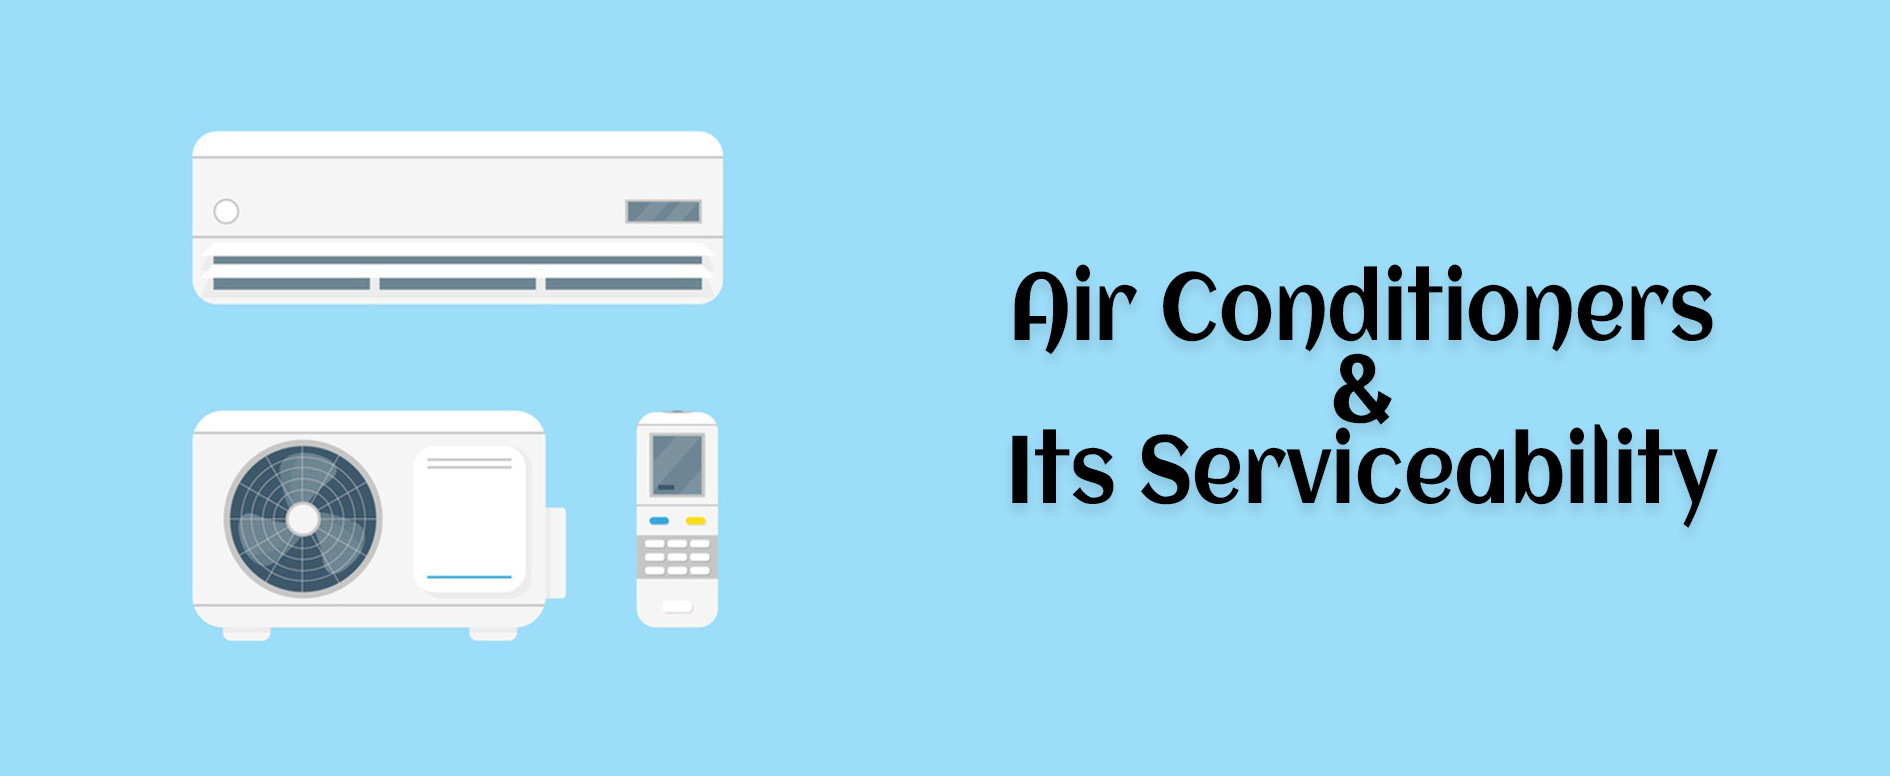 Air Conditioners and its Serviceability